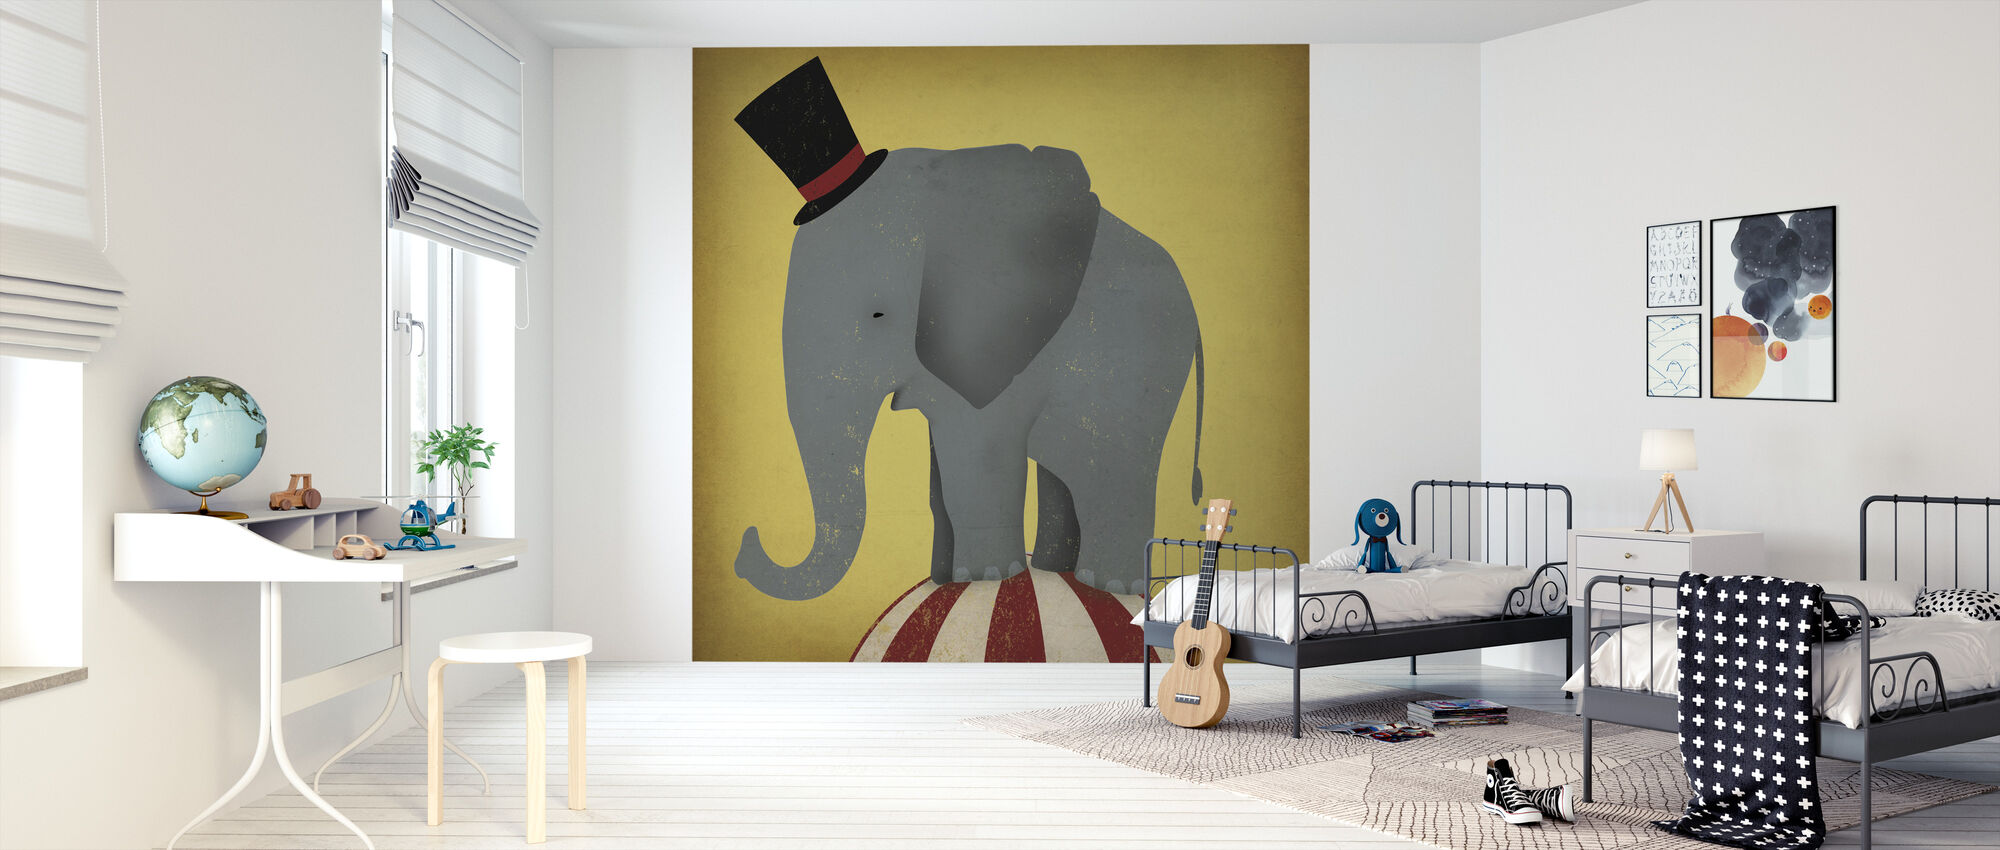 Circus Elephant - Wallpaper - Kids Room